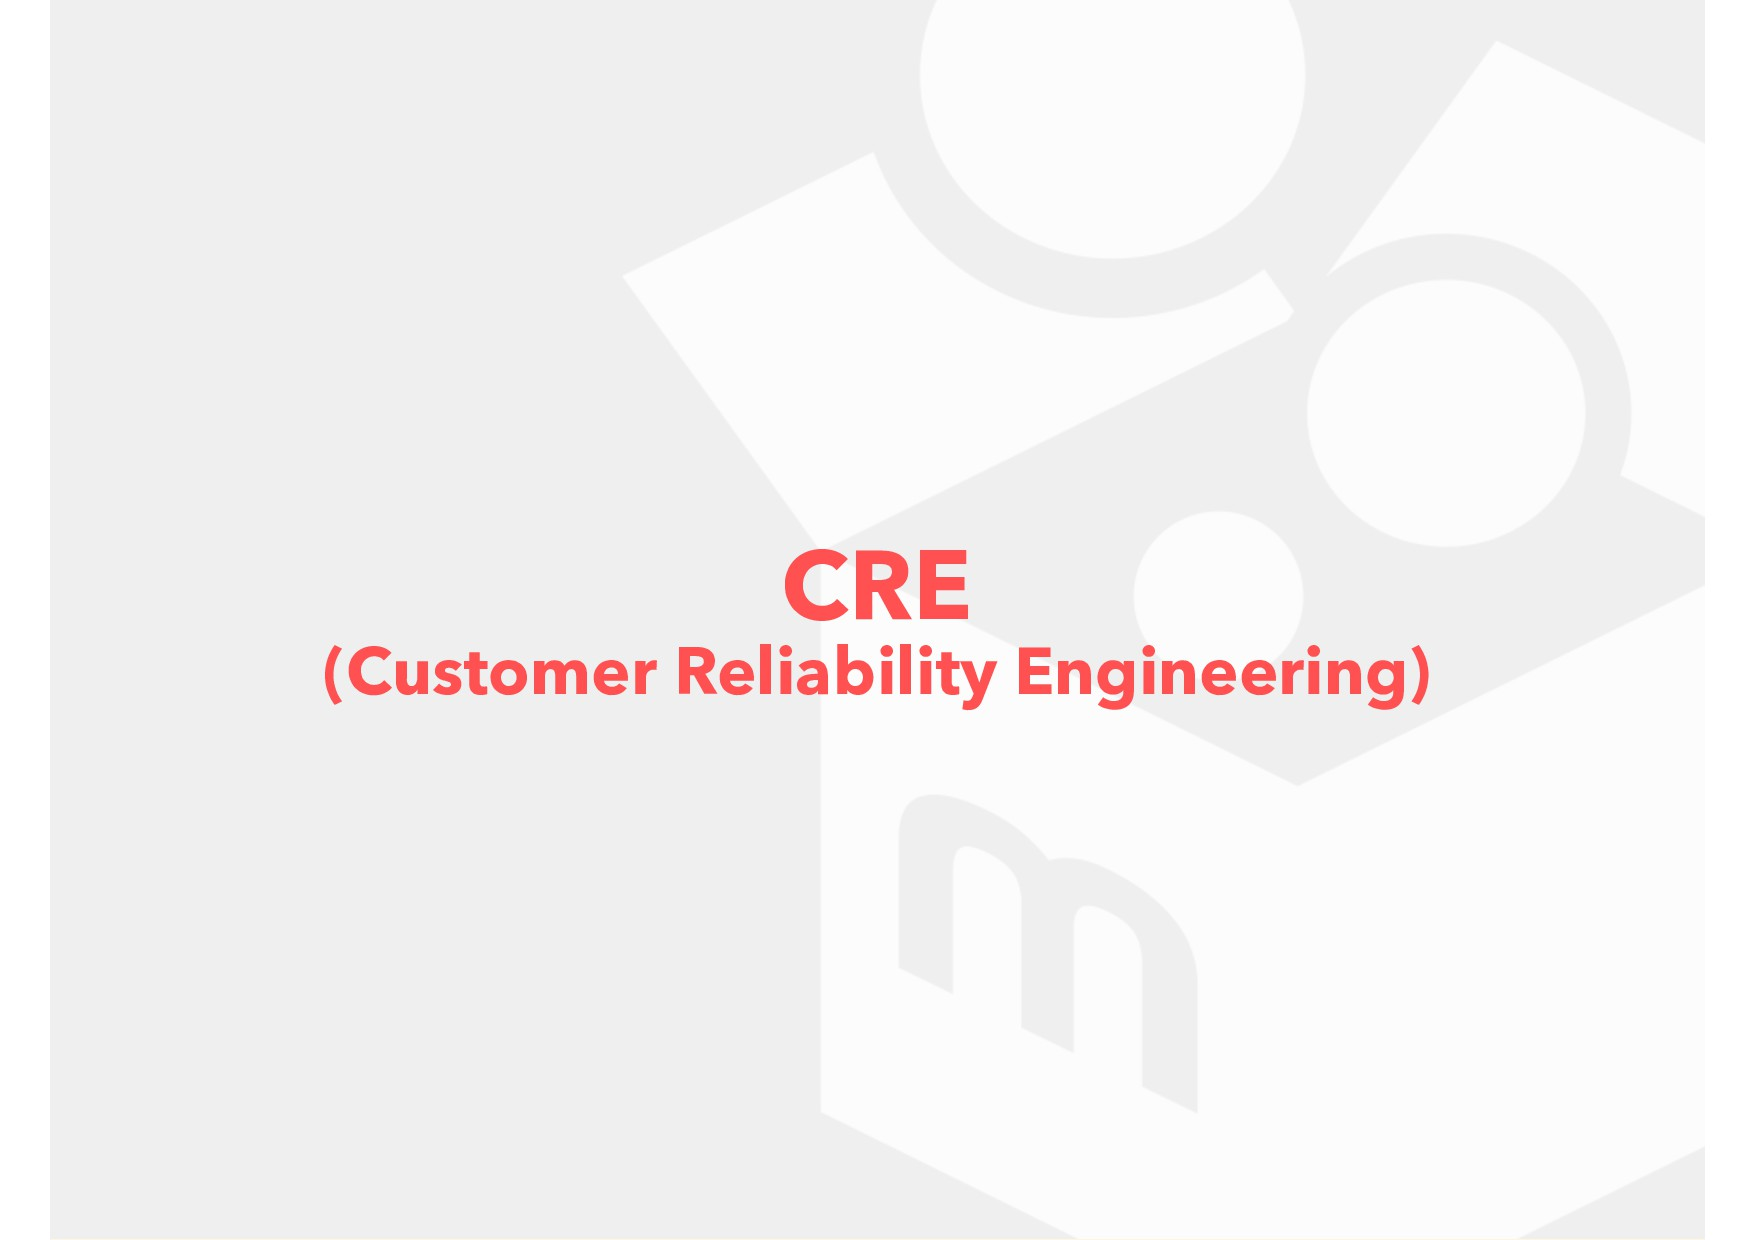 CRE (Customer Reliability Engineering)